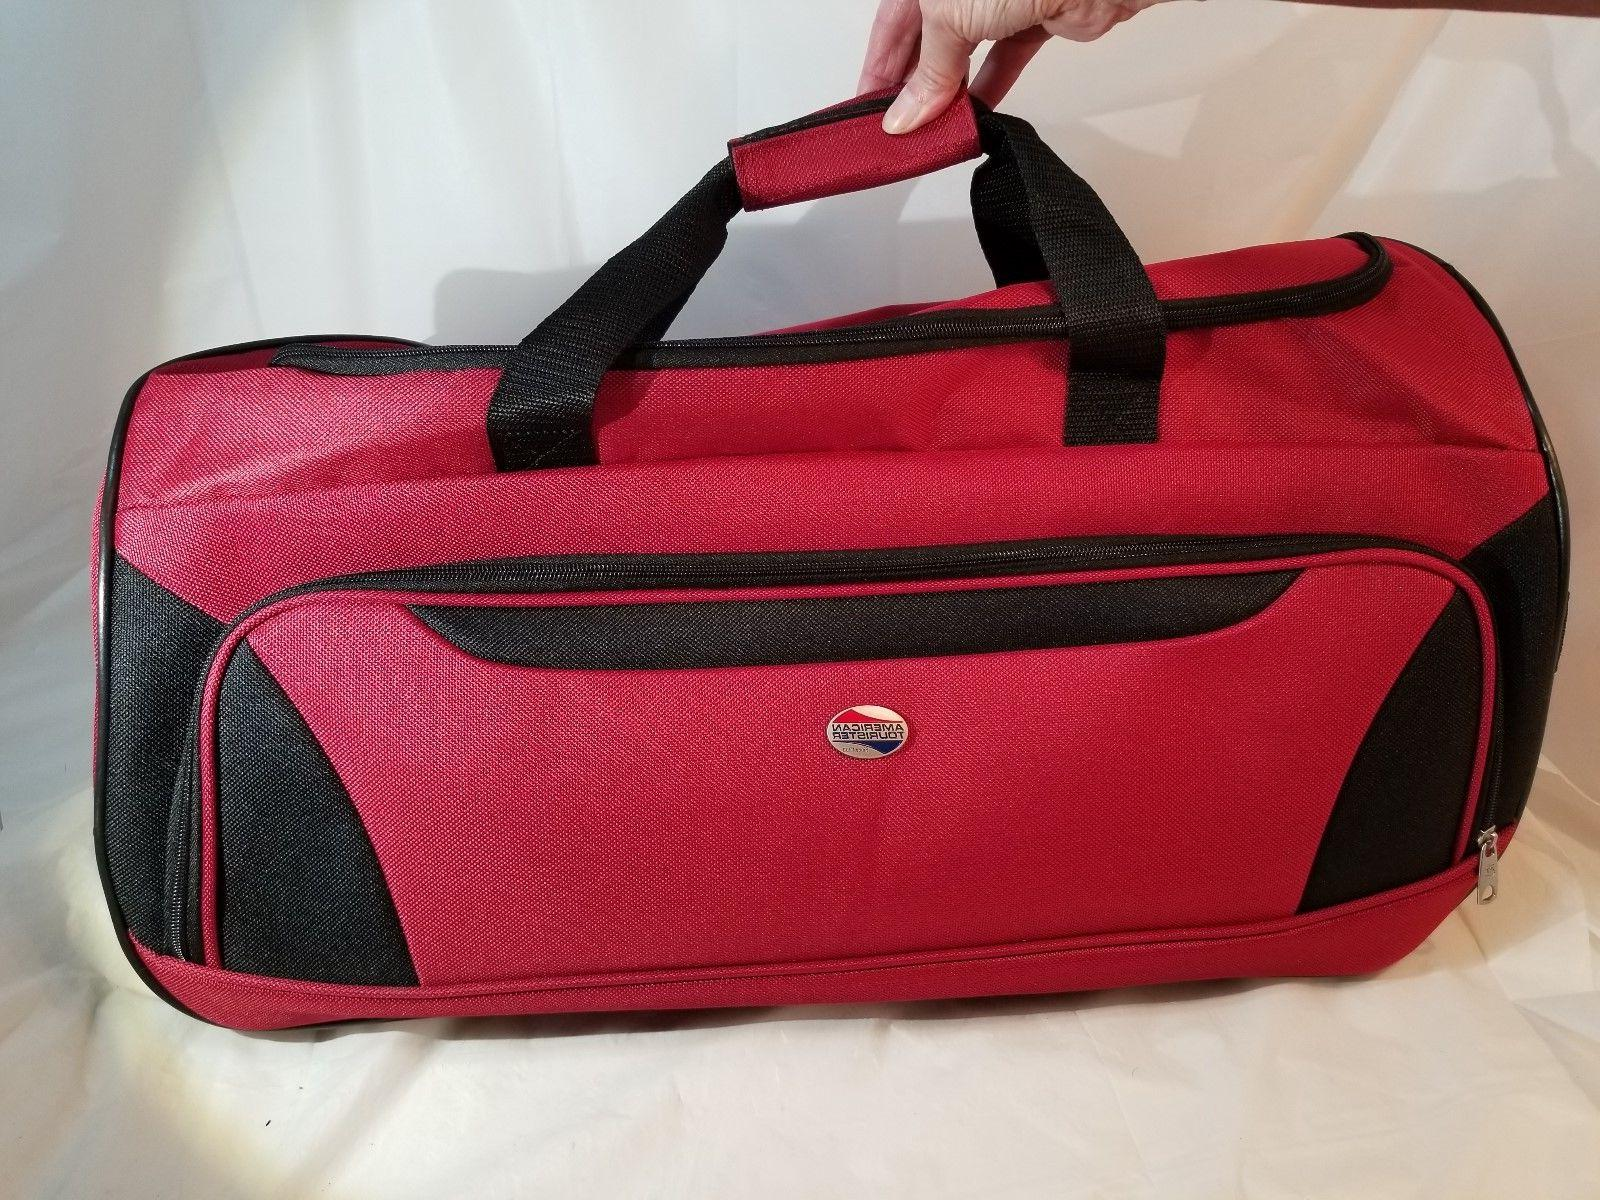 AMERICAN TOURISTER RED DUFFEL TRAVEL BAG WHEELS NEW